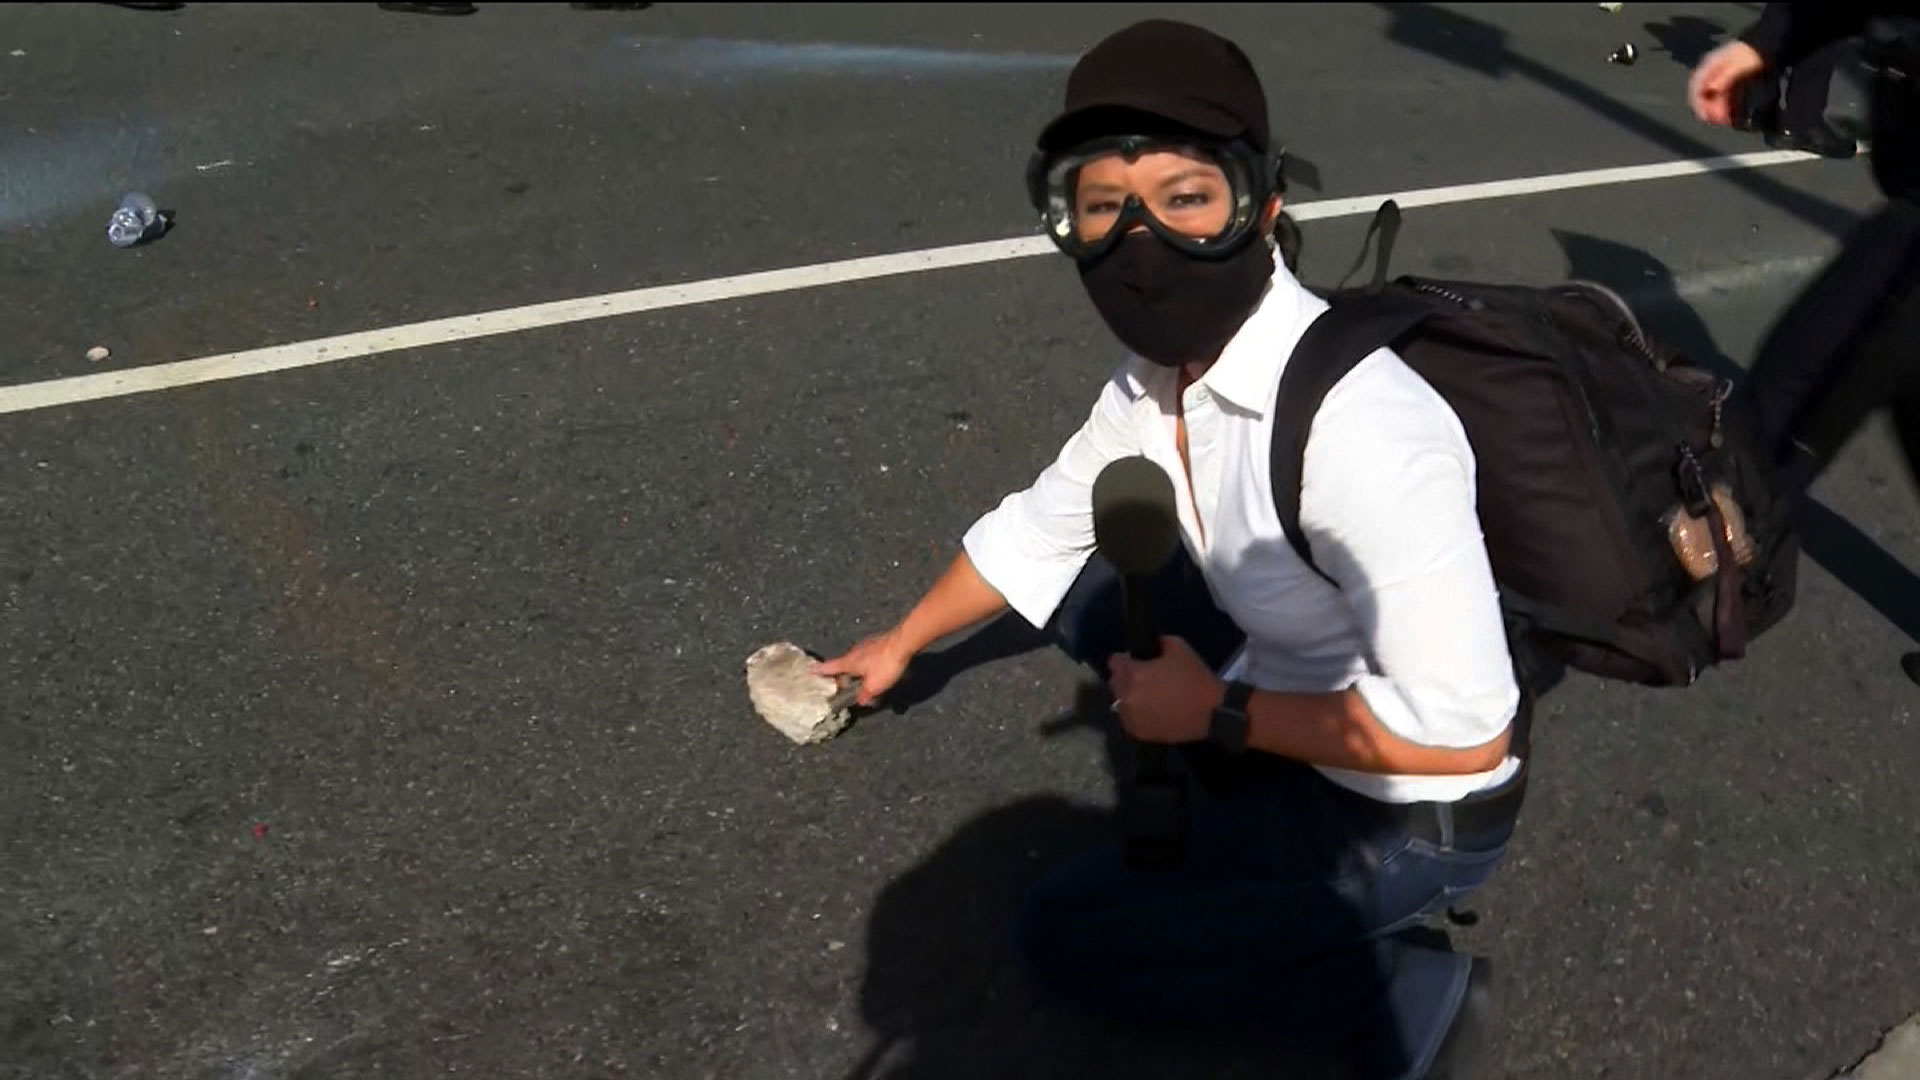 CNN's Kyung Lah points to a piece of concrete being thrown at police in Santa Monica on May 31.